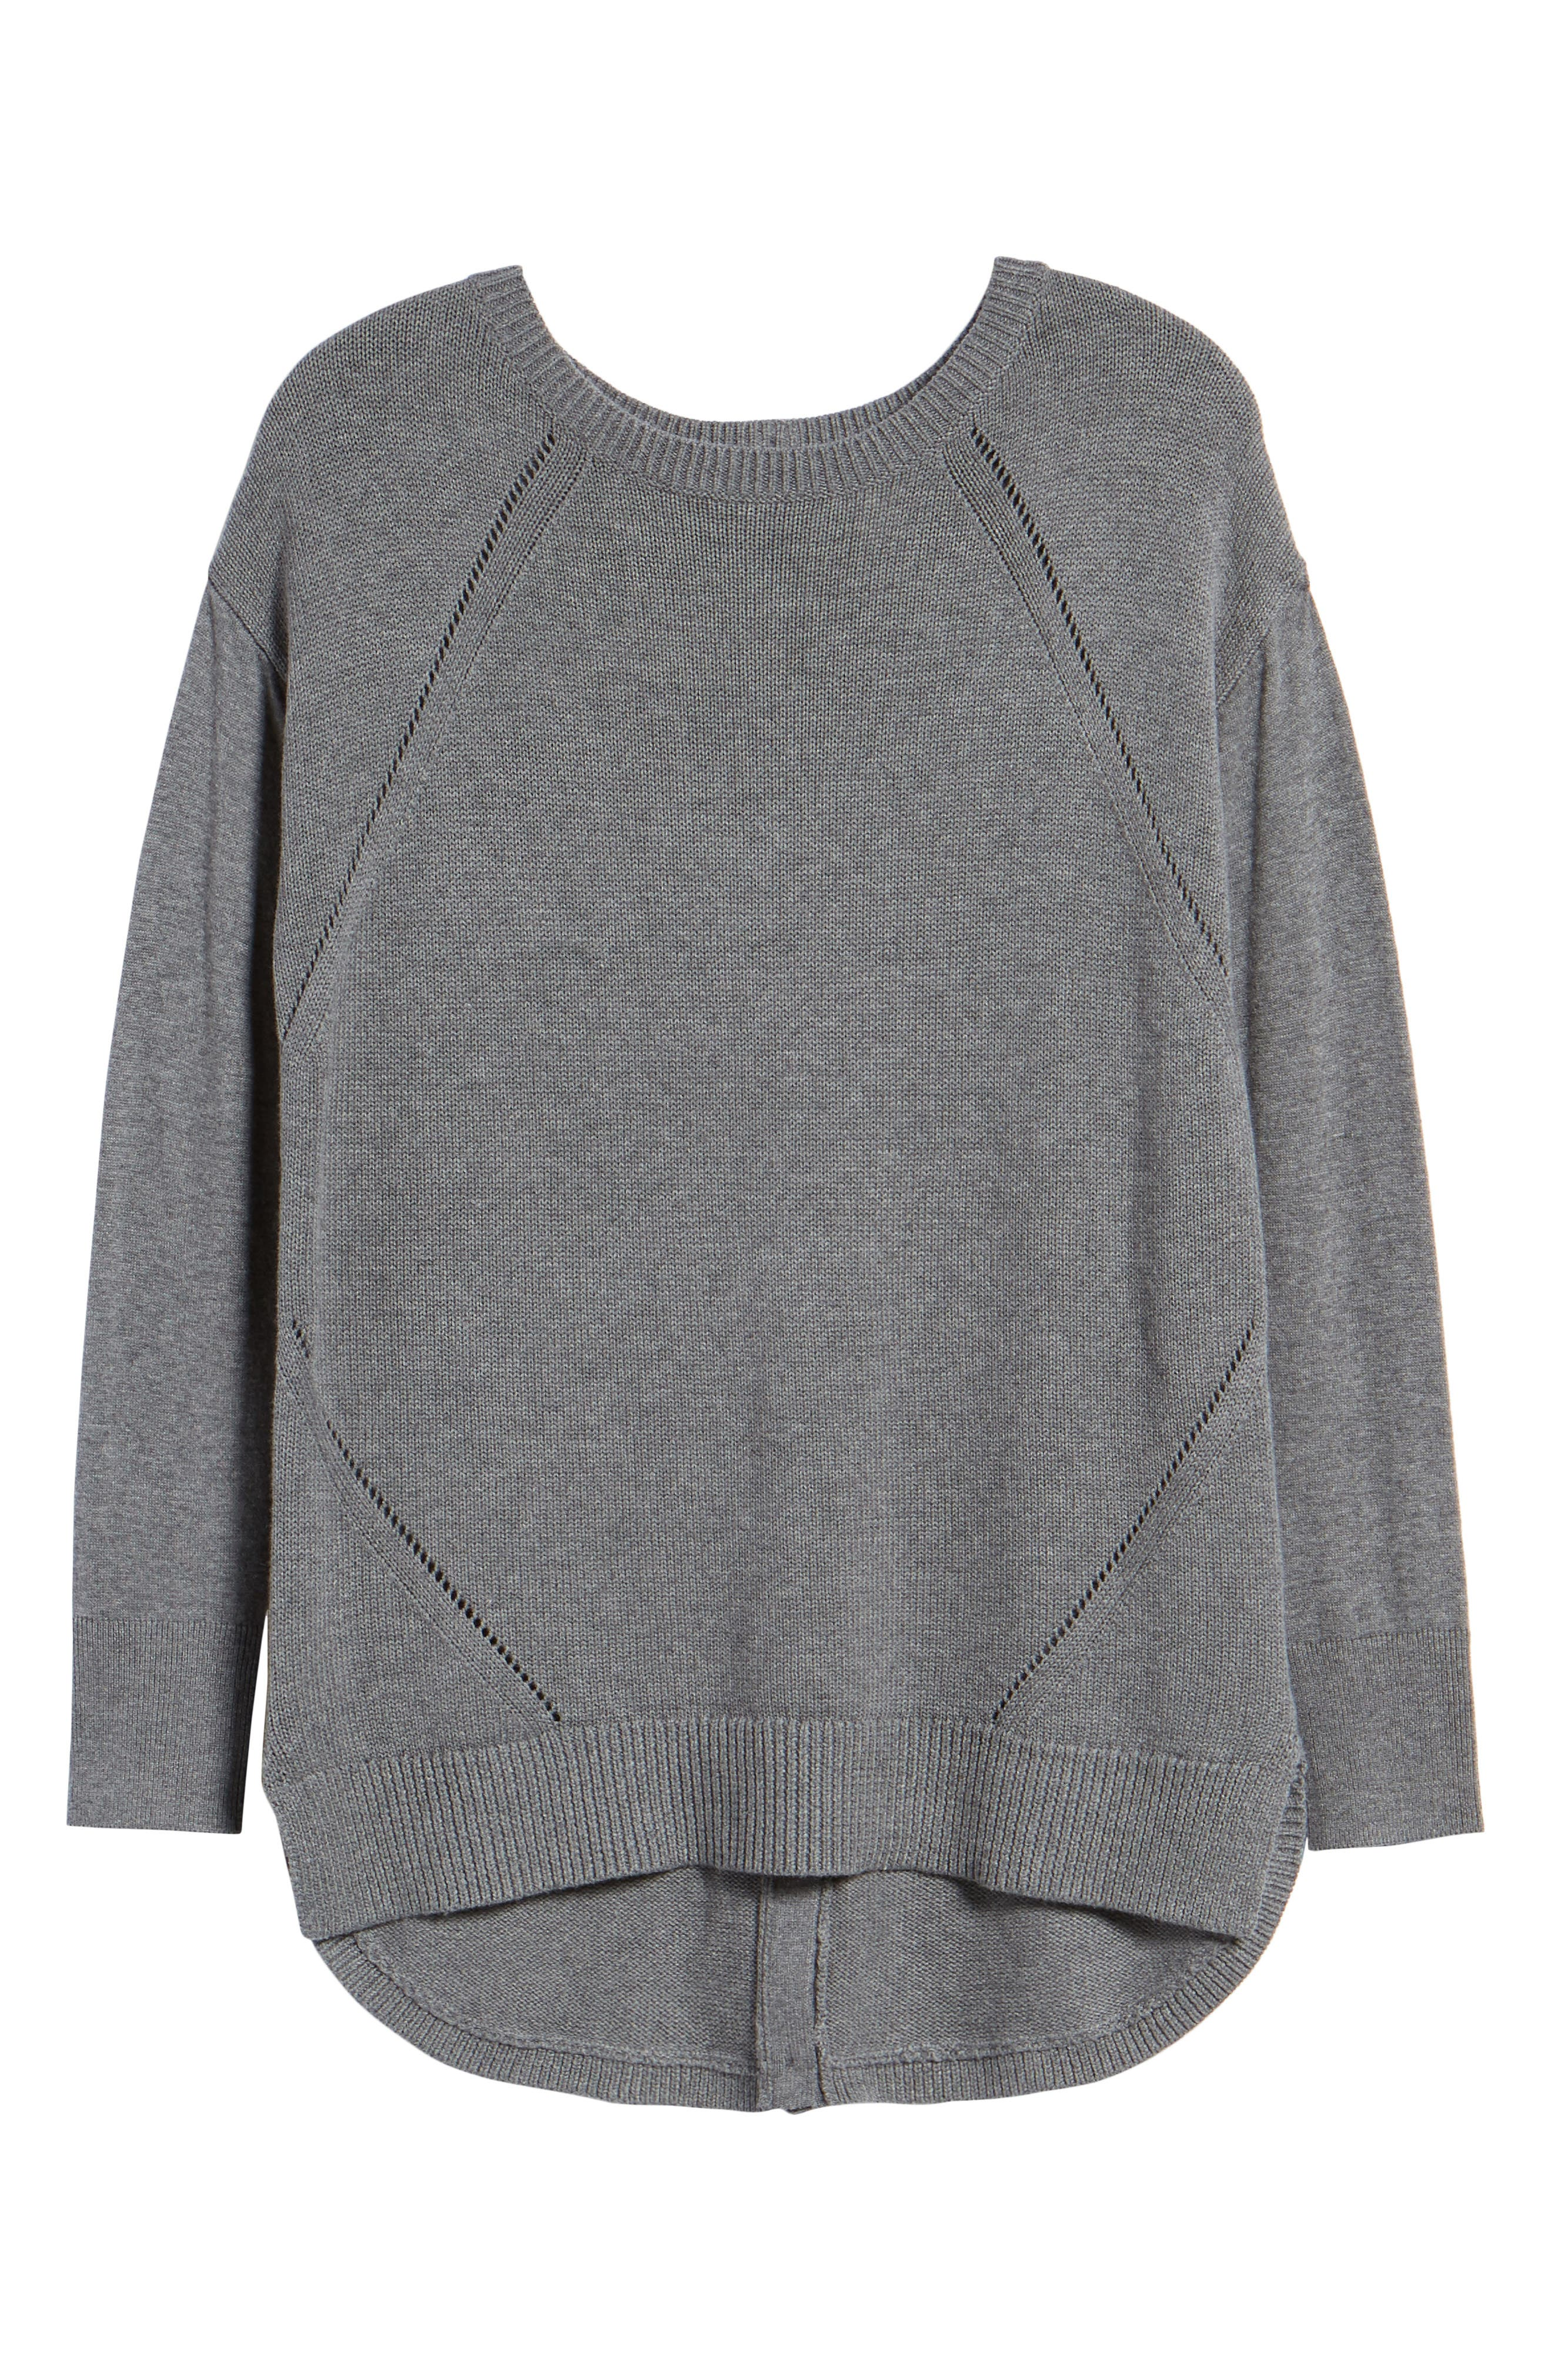 Button Back Tunic Sweater,                             Alternate thumbnail 6, color,                             GREY DARK HEATHER